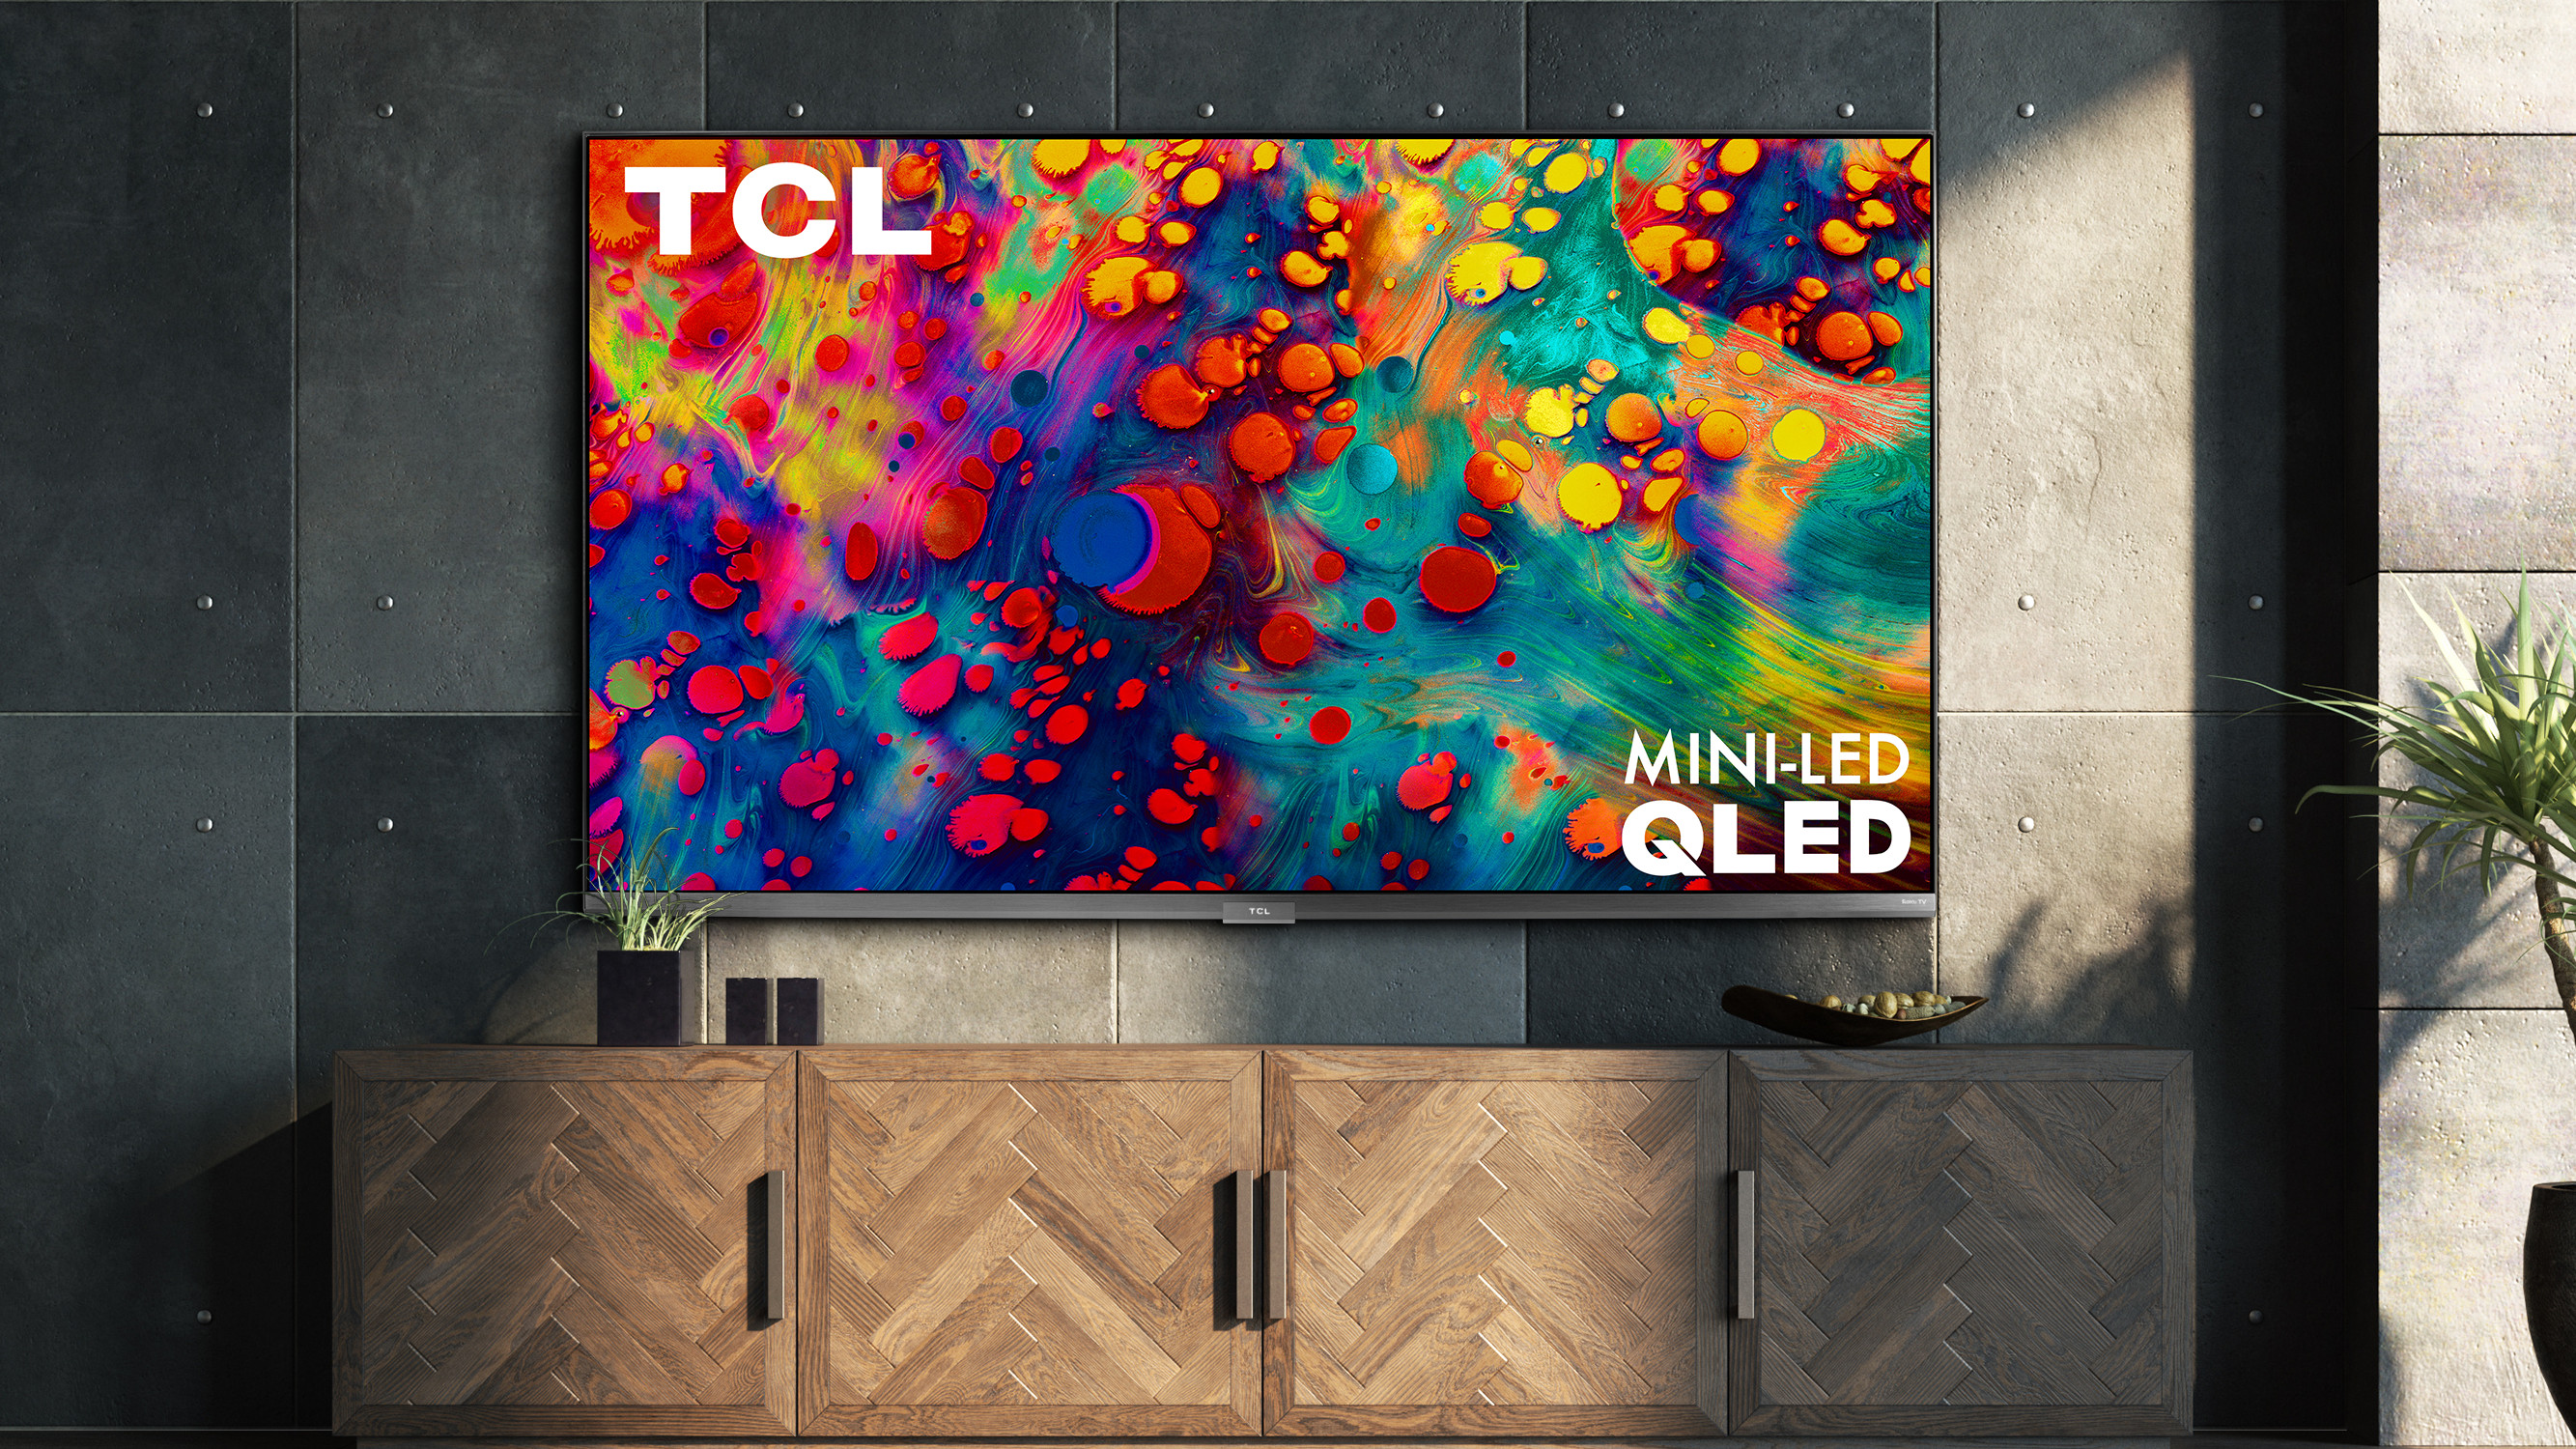 TCL TV 2021 range: every new TCL TV for this year thumbnail